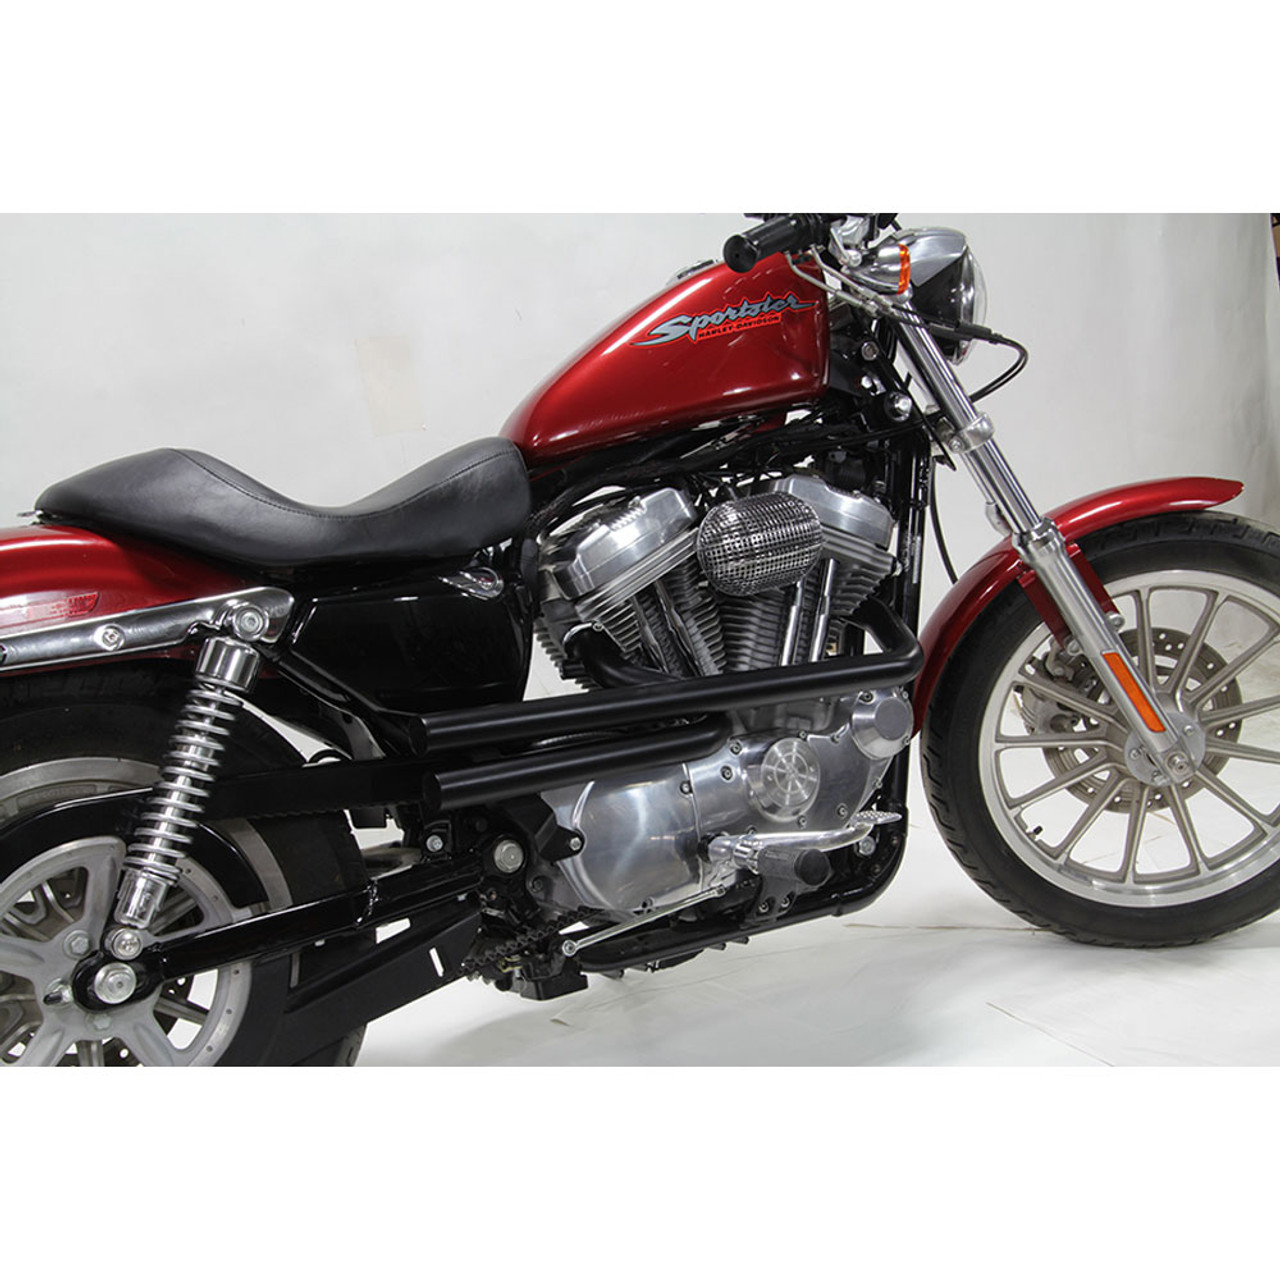 V Twin Mfg Shotgun Style Exhaust For 2004 2018 Harley Sportster Black 29 0202 Get Lowered Cycles